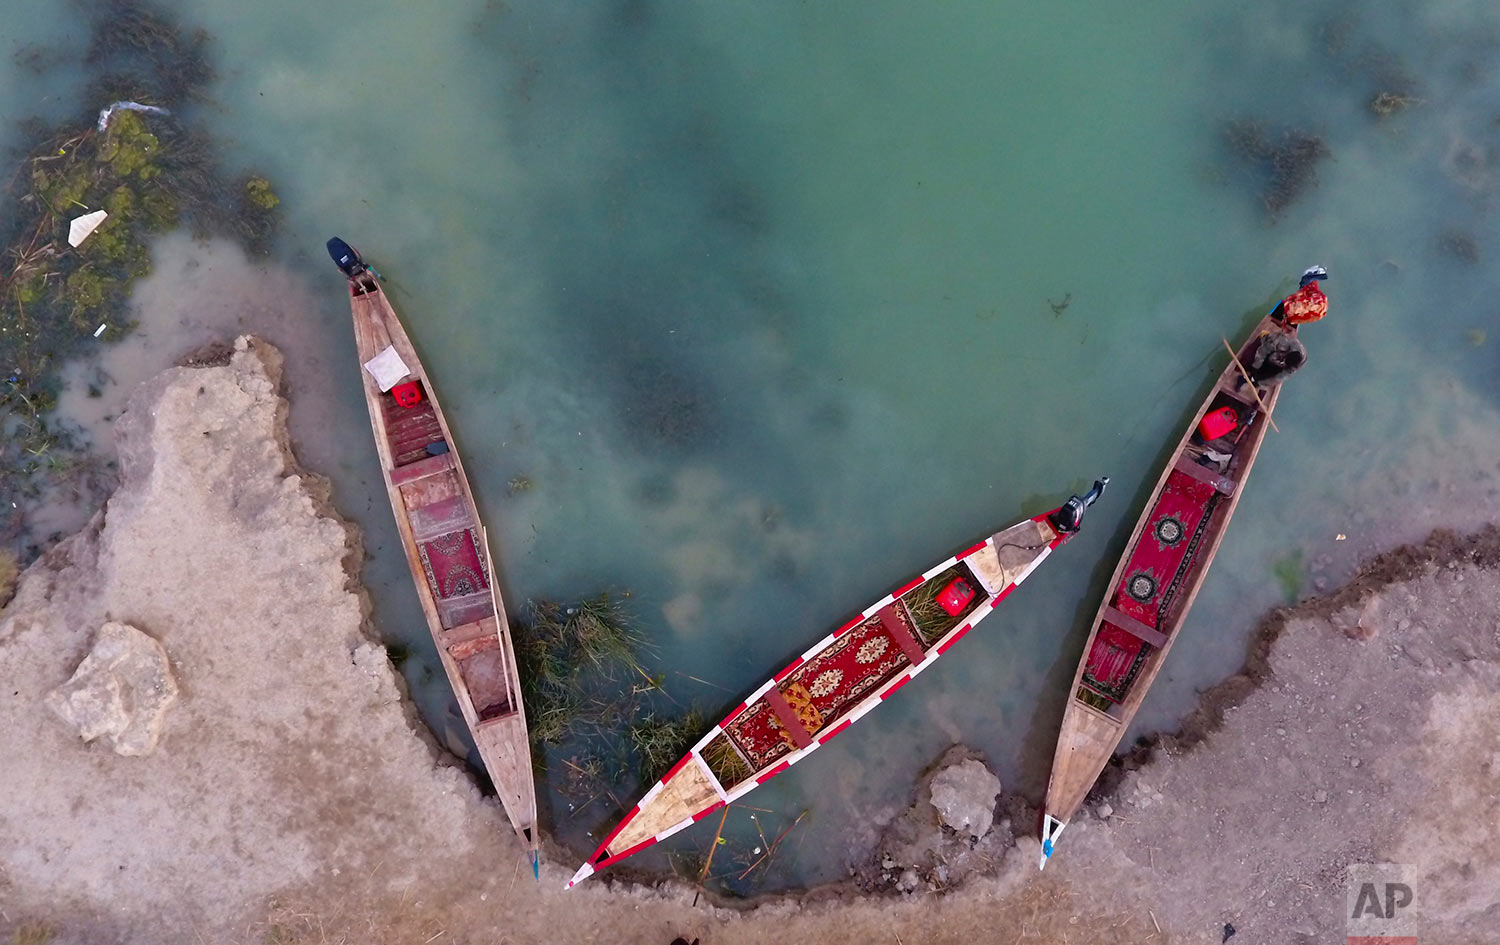 Boats owners are seen in the Chabaish marsh, in the Maysan province of southern Iraq, Saturday, Jan. 7, 2017. (AP Photo/ Nabil al-Jurani)